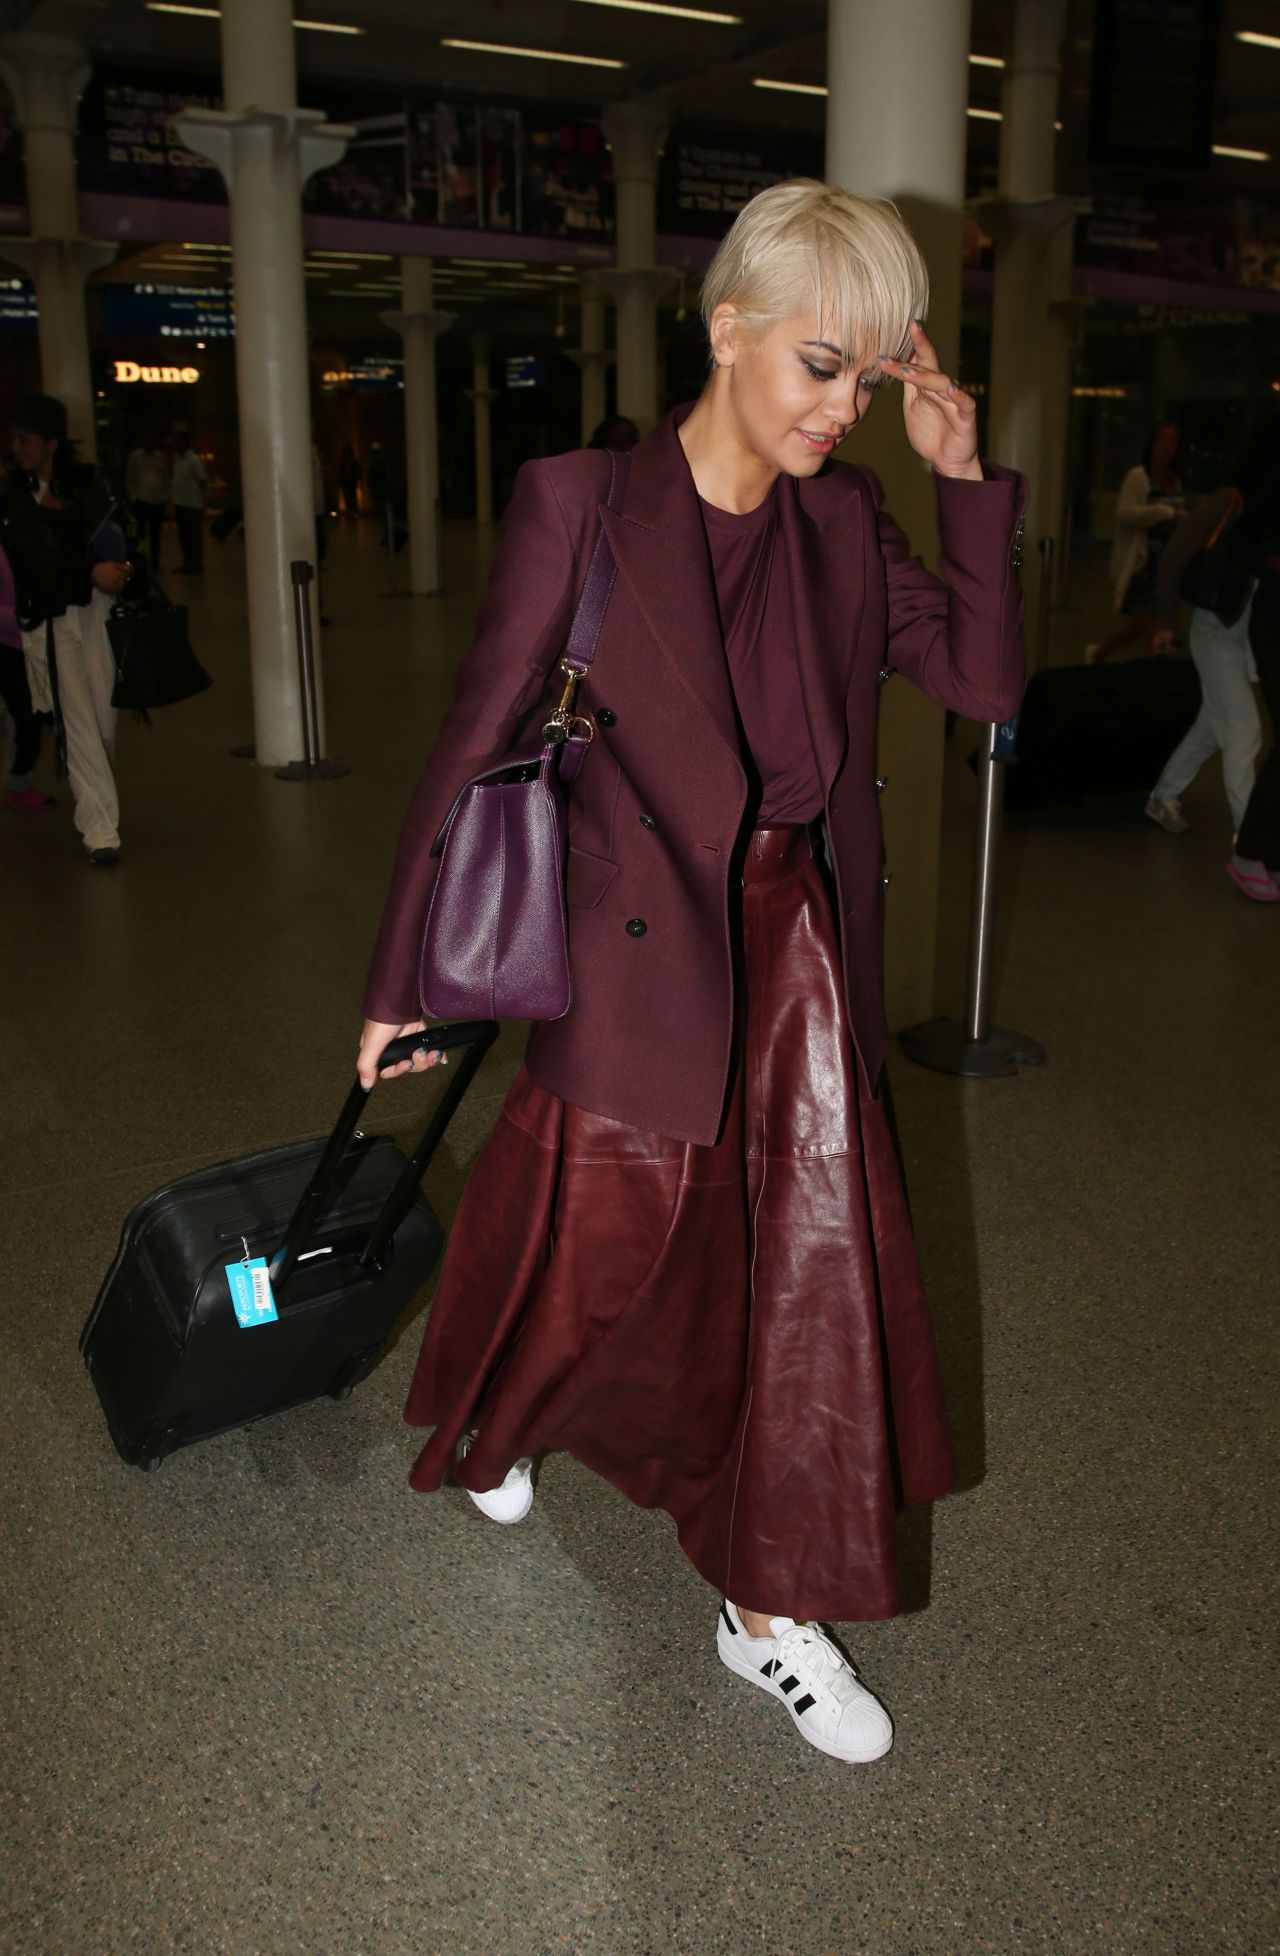 rita-ora-at-king-s-cross-railway-station-in-london-july-2015_4